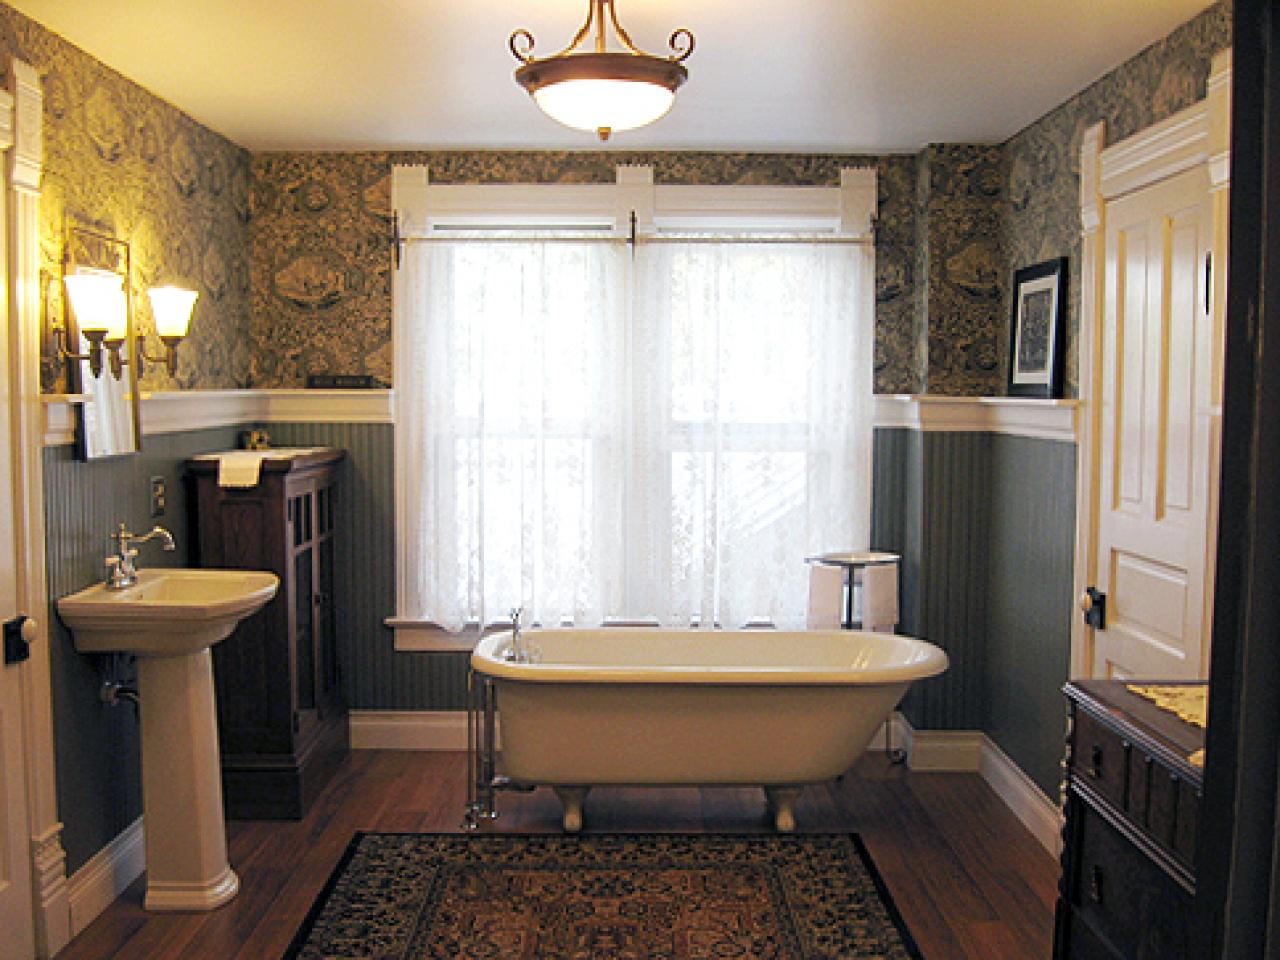 49 Victorian Wallpaper Patterns For Bathroom On